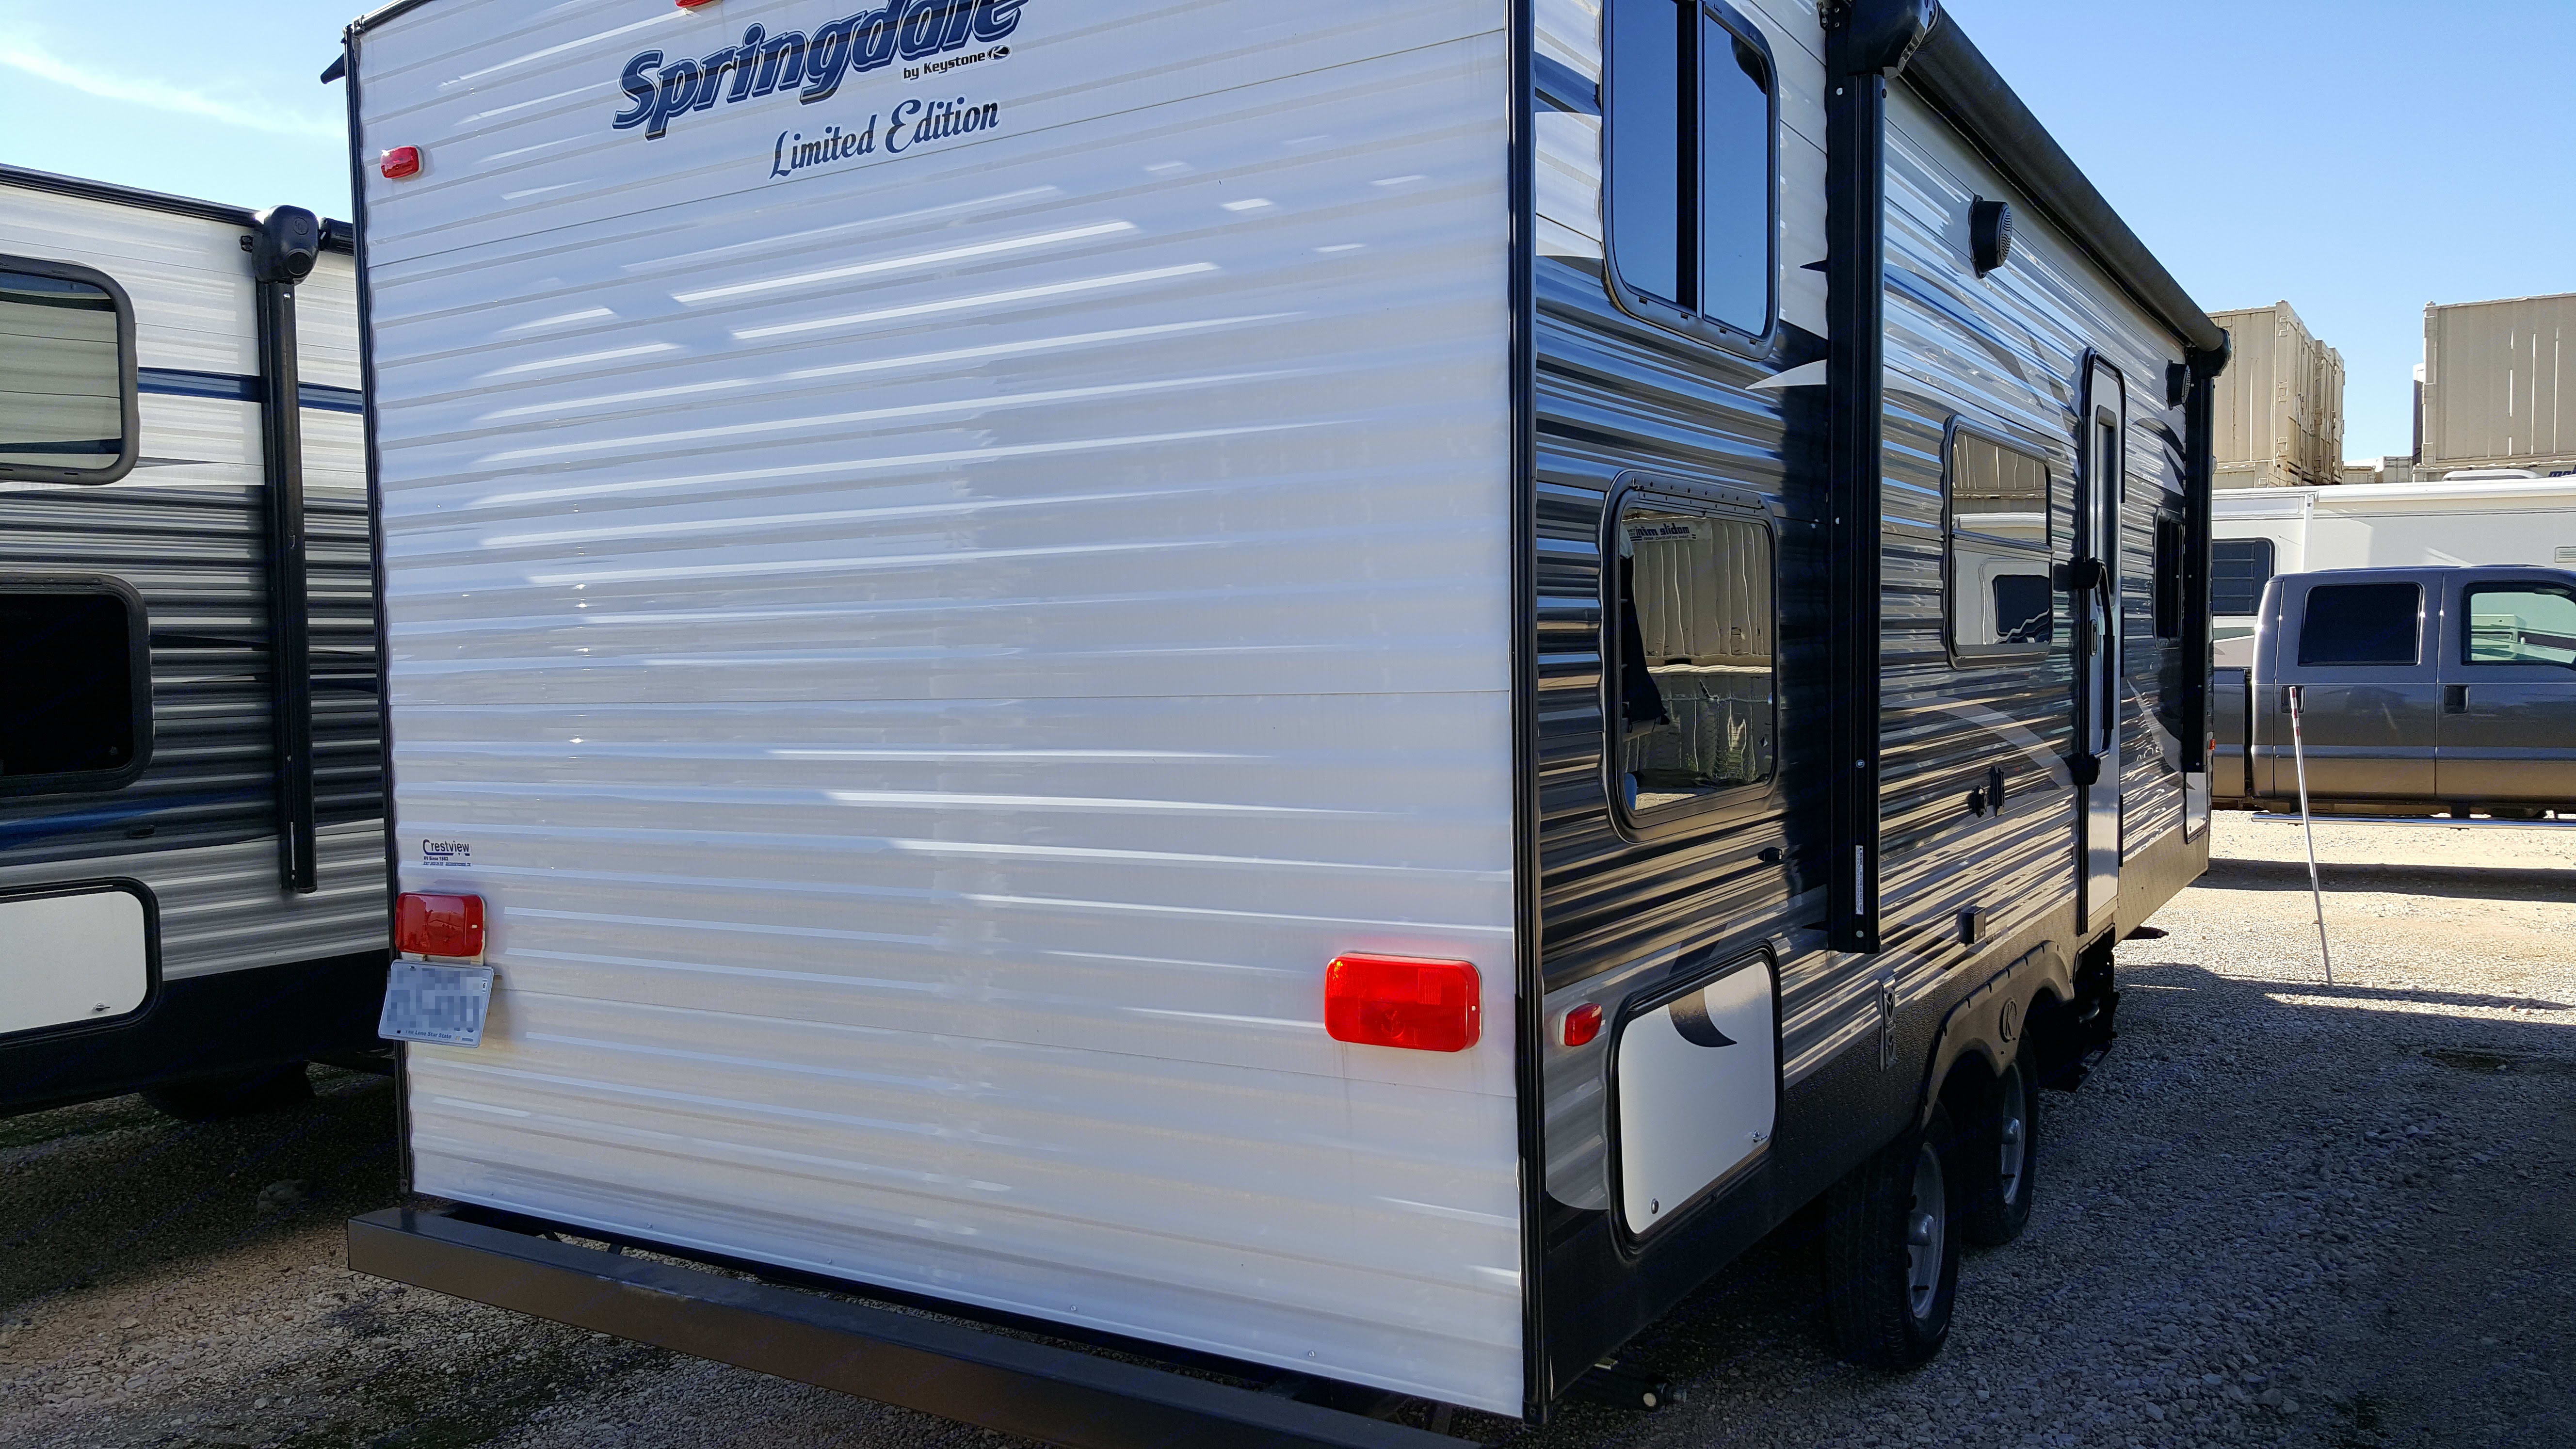 26ft Keystone Springdale with double bunks, shower, master room privacy sliding door & pull out loveseat sleeper. . Keystone Springdale 2016